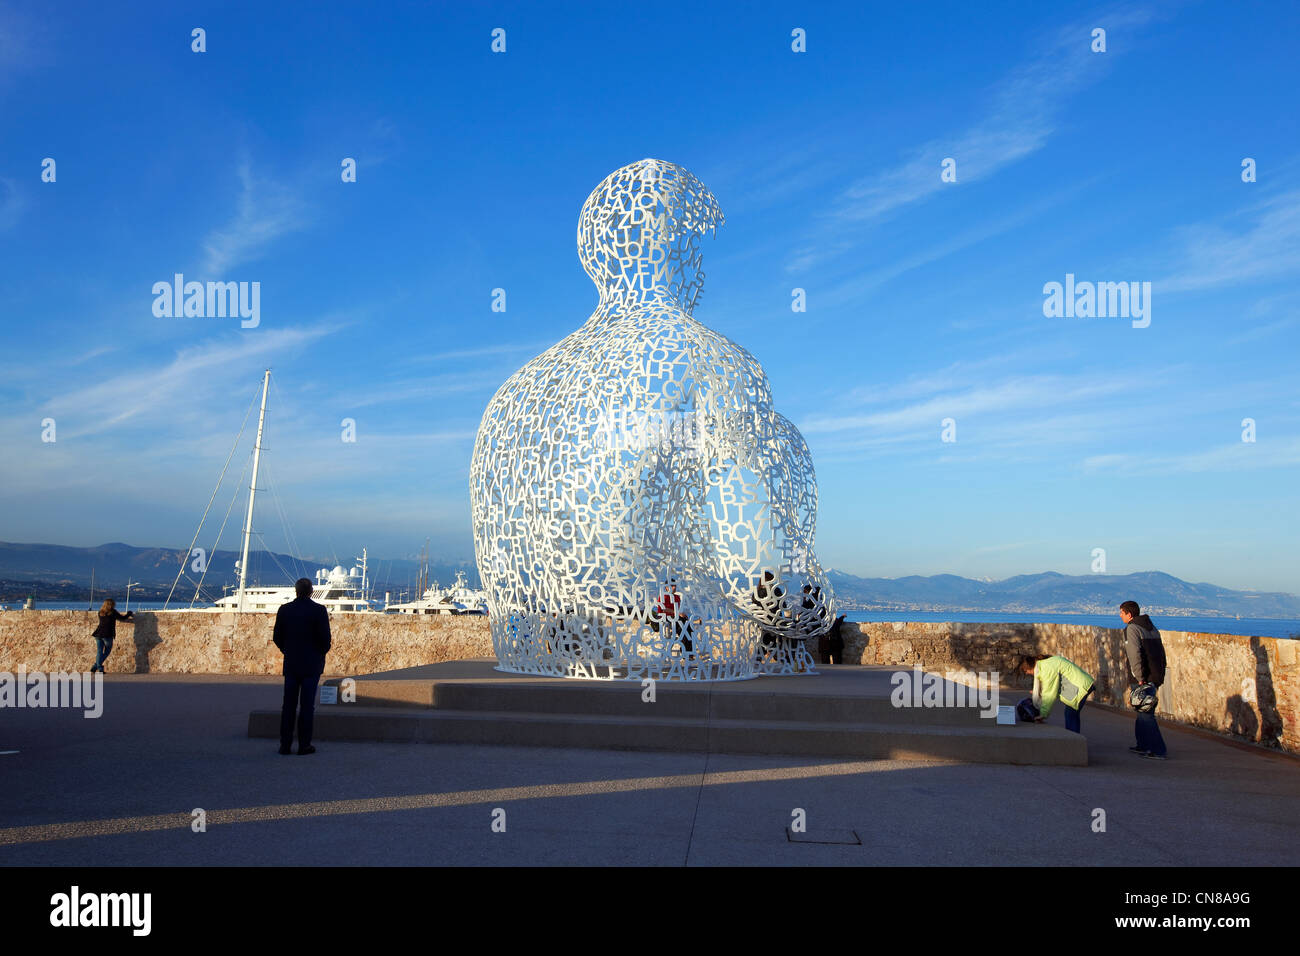 France, Alpes Maritimes, Antibes Bastion Saint Jaume cultural space, the Nomad, statue installed in 2007, designed - Stock Image